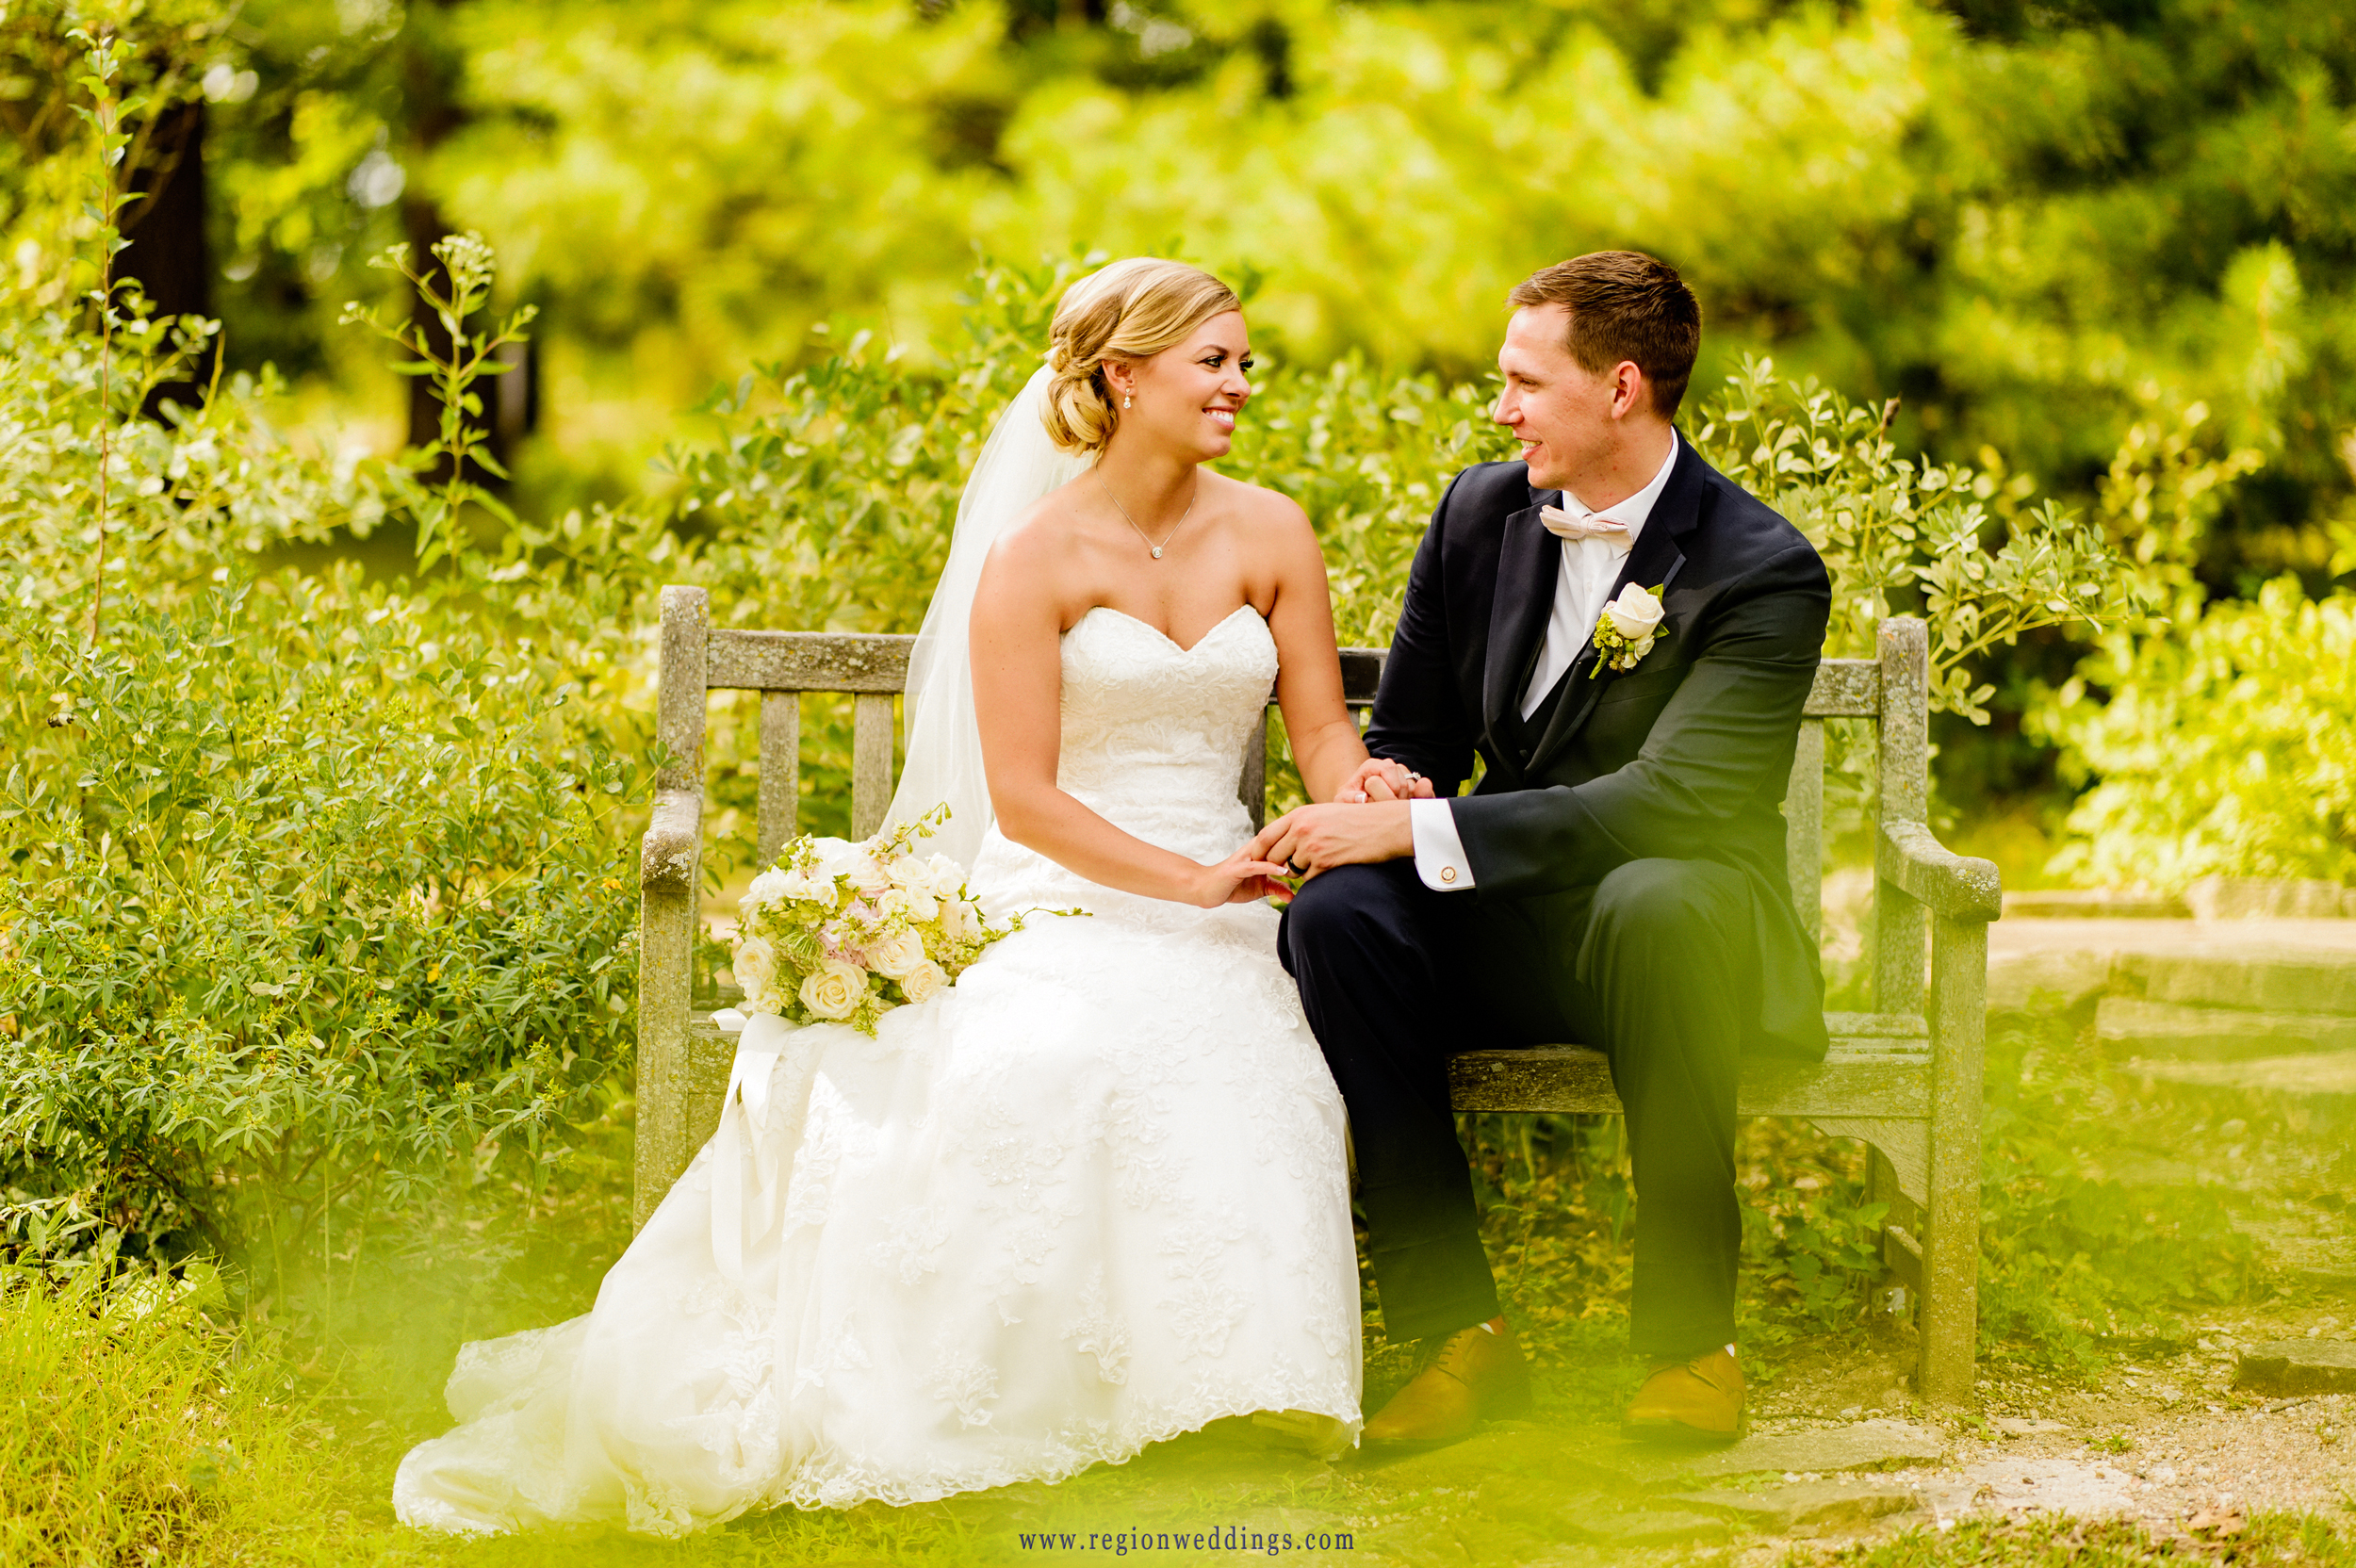 Bride and groom sit and chat on a bench surrounded by greenery at Taltree Arboretum.